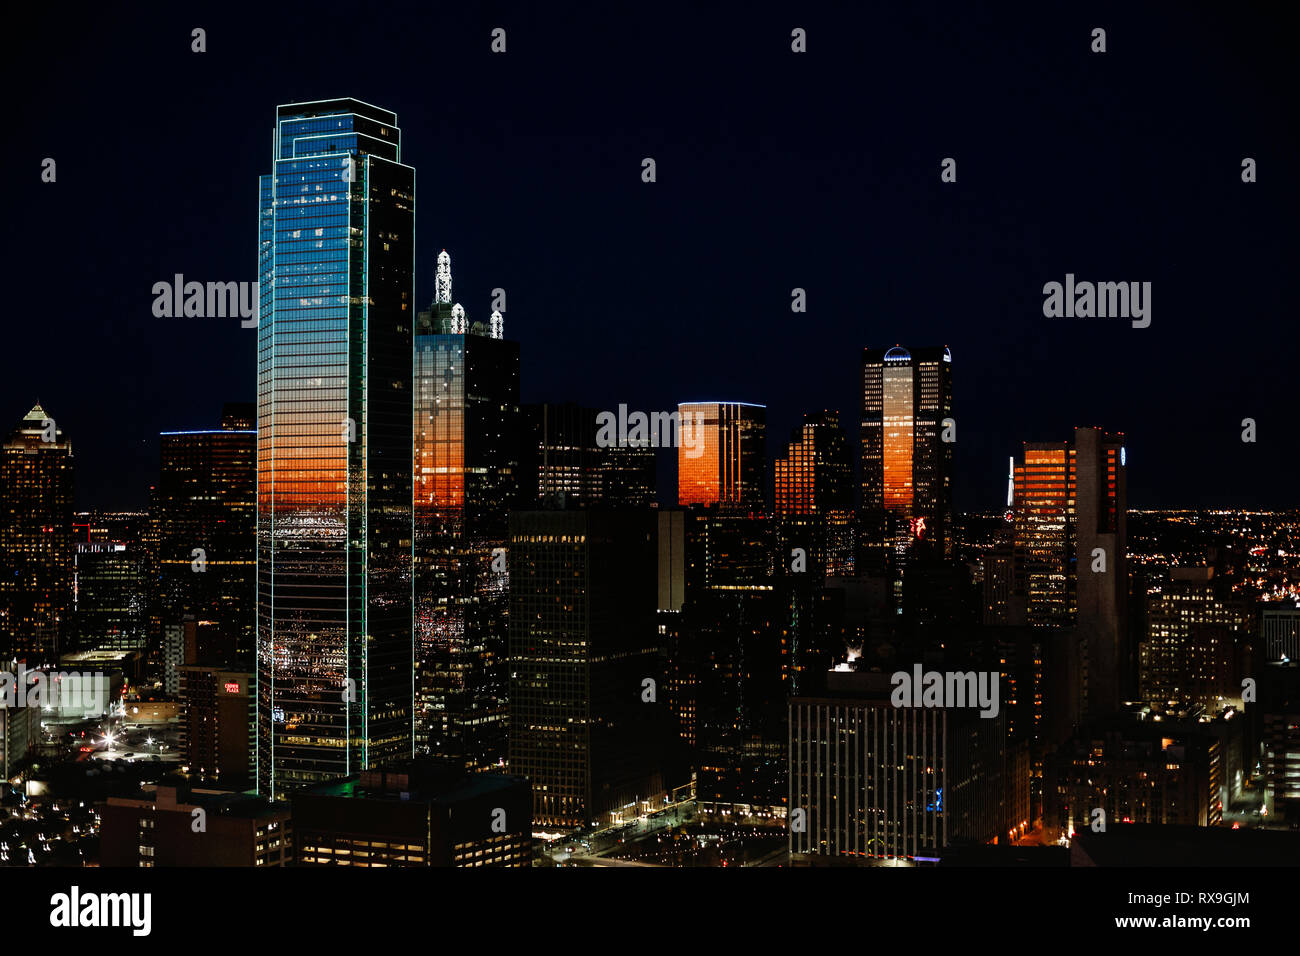 Digital composite image of illuminated modern buildings against sky at night - Stock Image